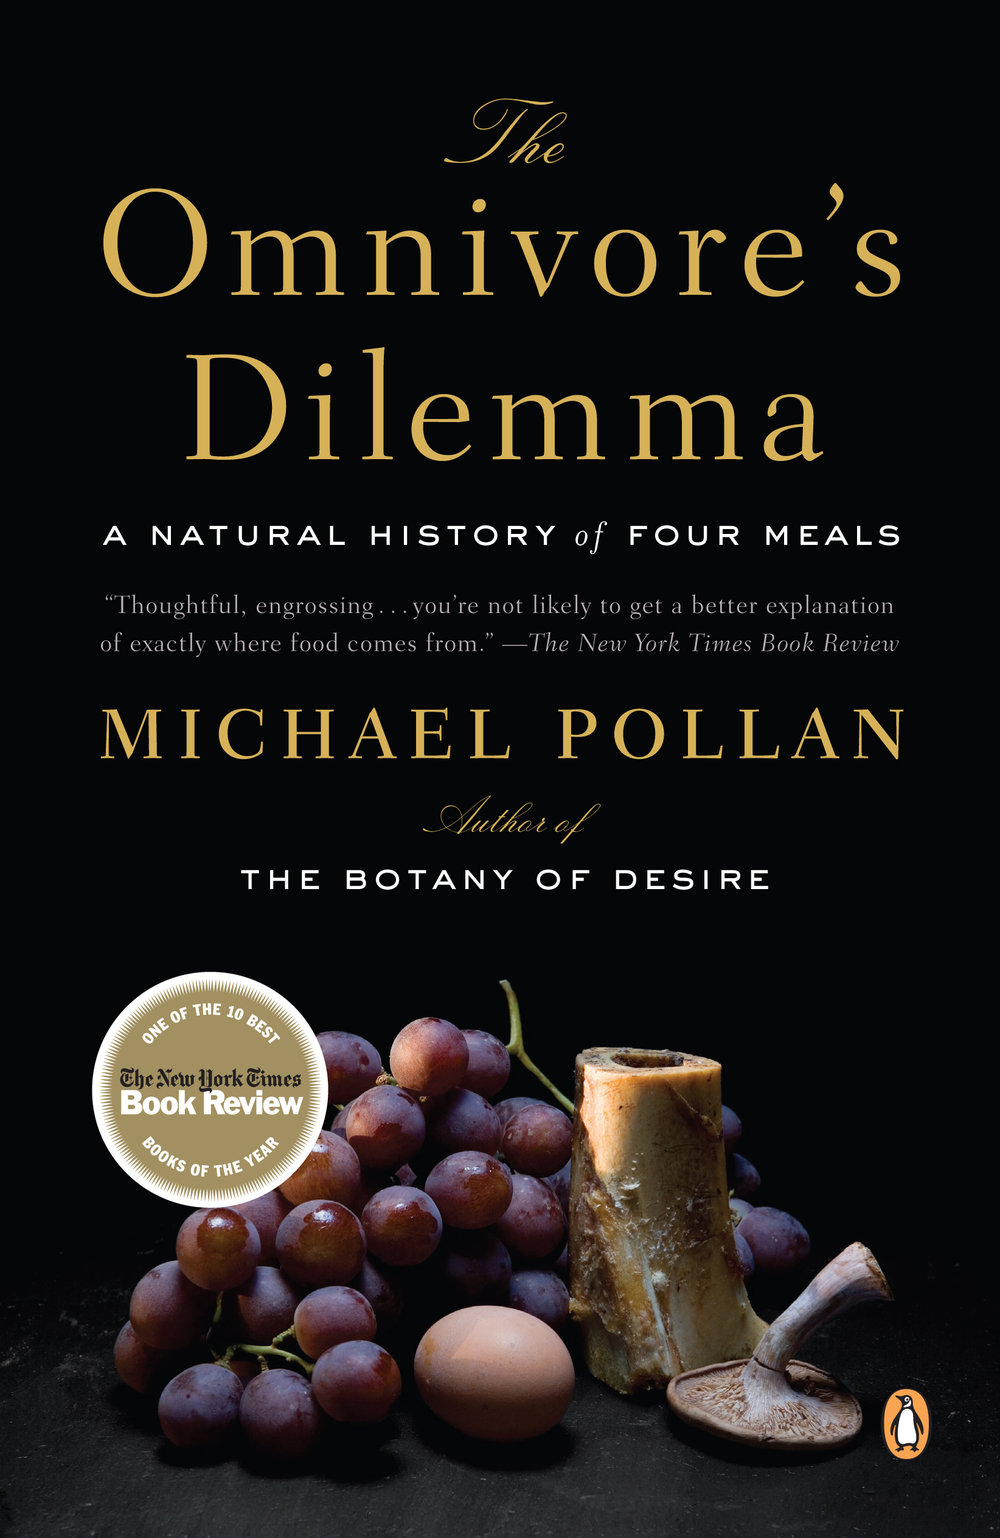 omnivores_dilemma_by_michael_pollan1.jpg